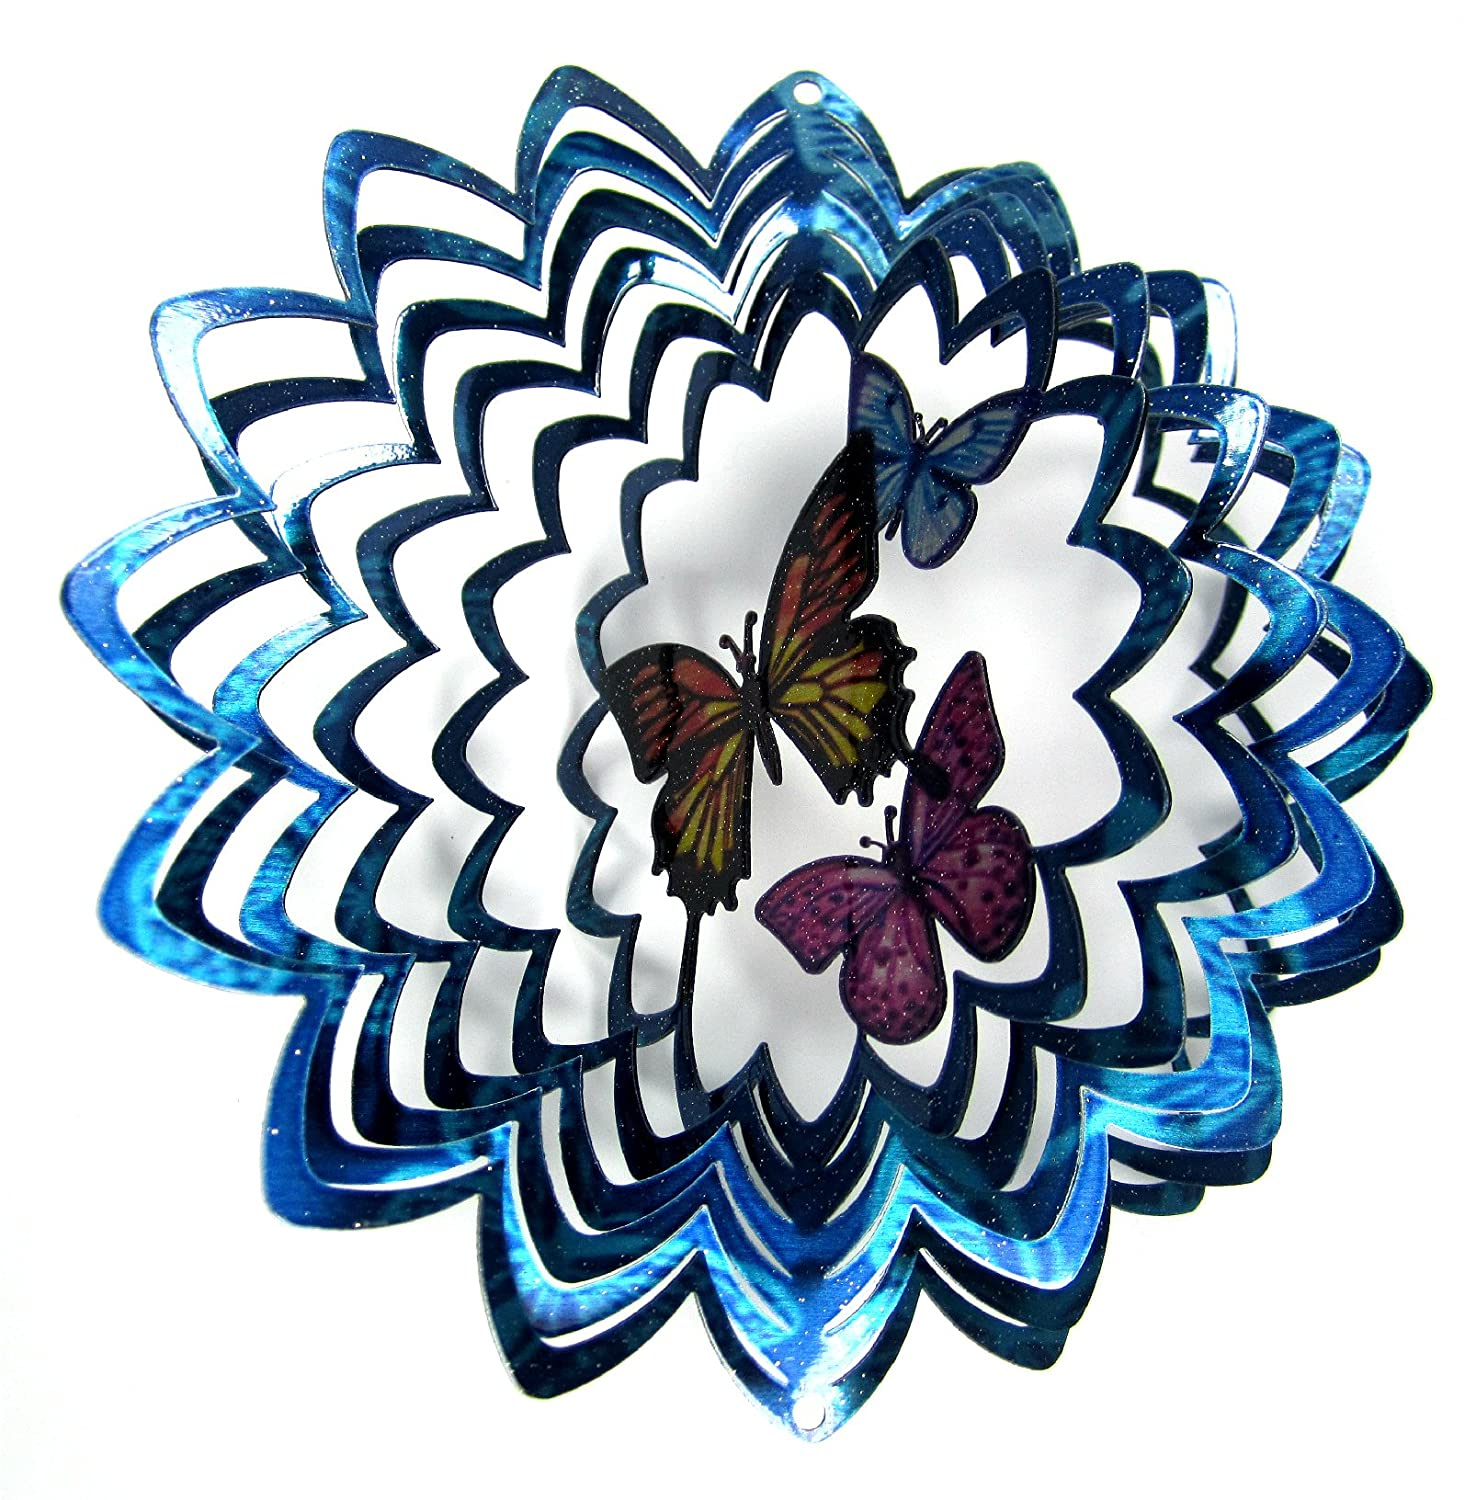 WorldaWhirl Whirligig 3D Wind Whirligig Spinner Wind Hand Painted Butterfly Stainless Steel Twister Butterfly (17cm Inch, Multi Colour Blue Silver) B01KUYSTSA, 山形村:66127a81 --- artmozg.com